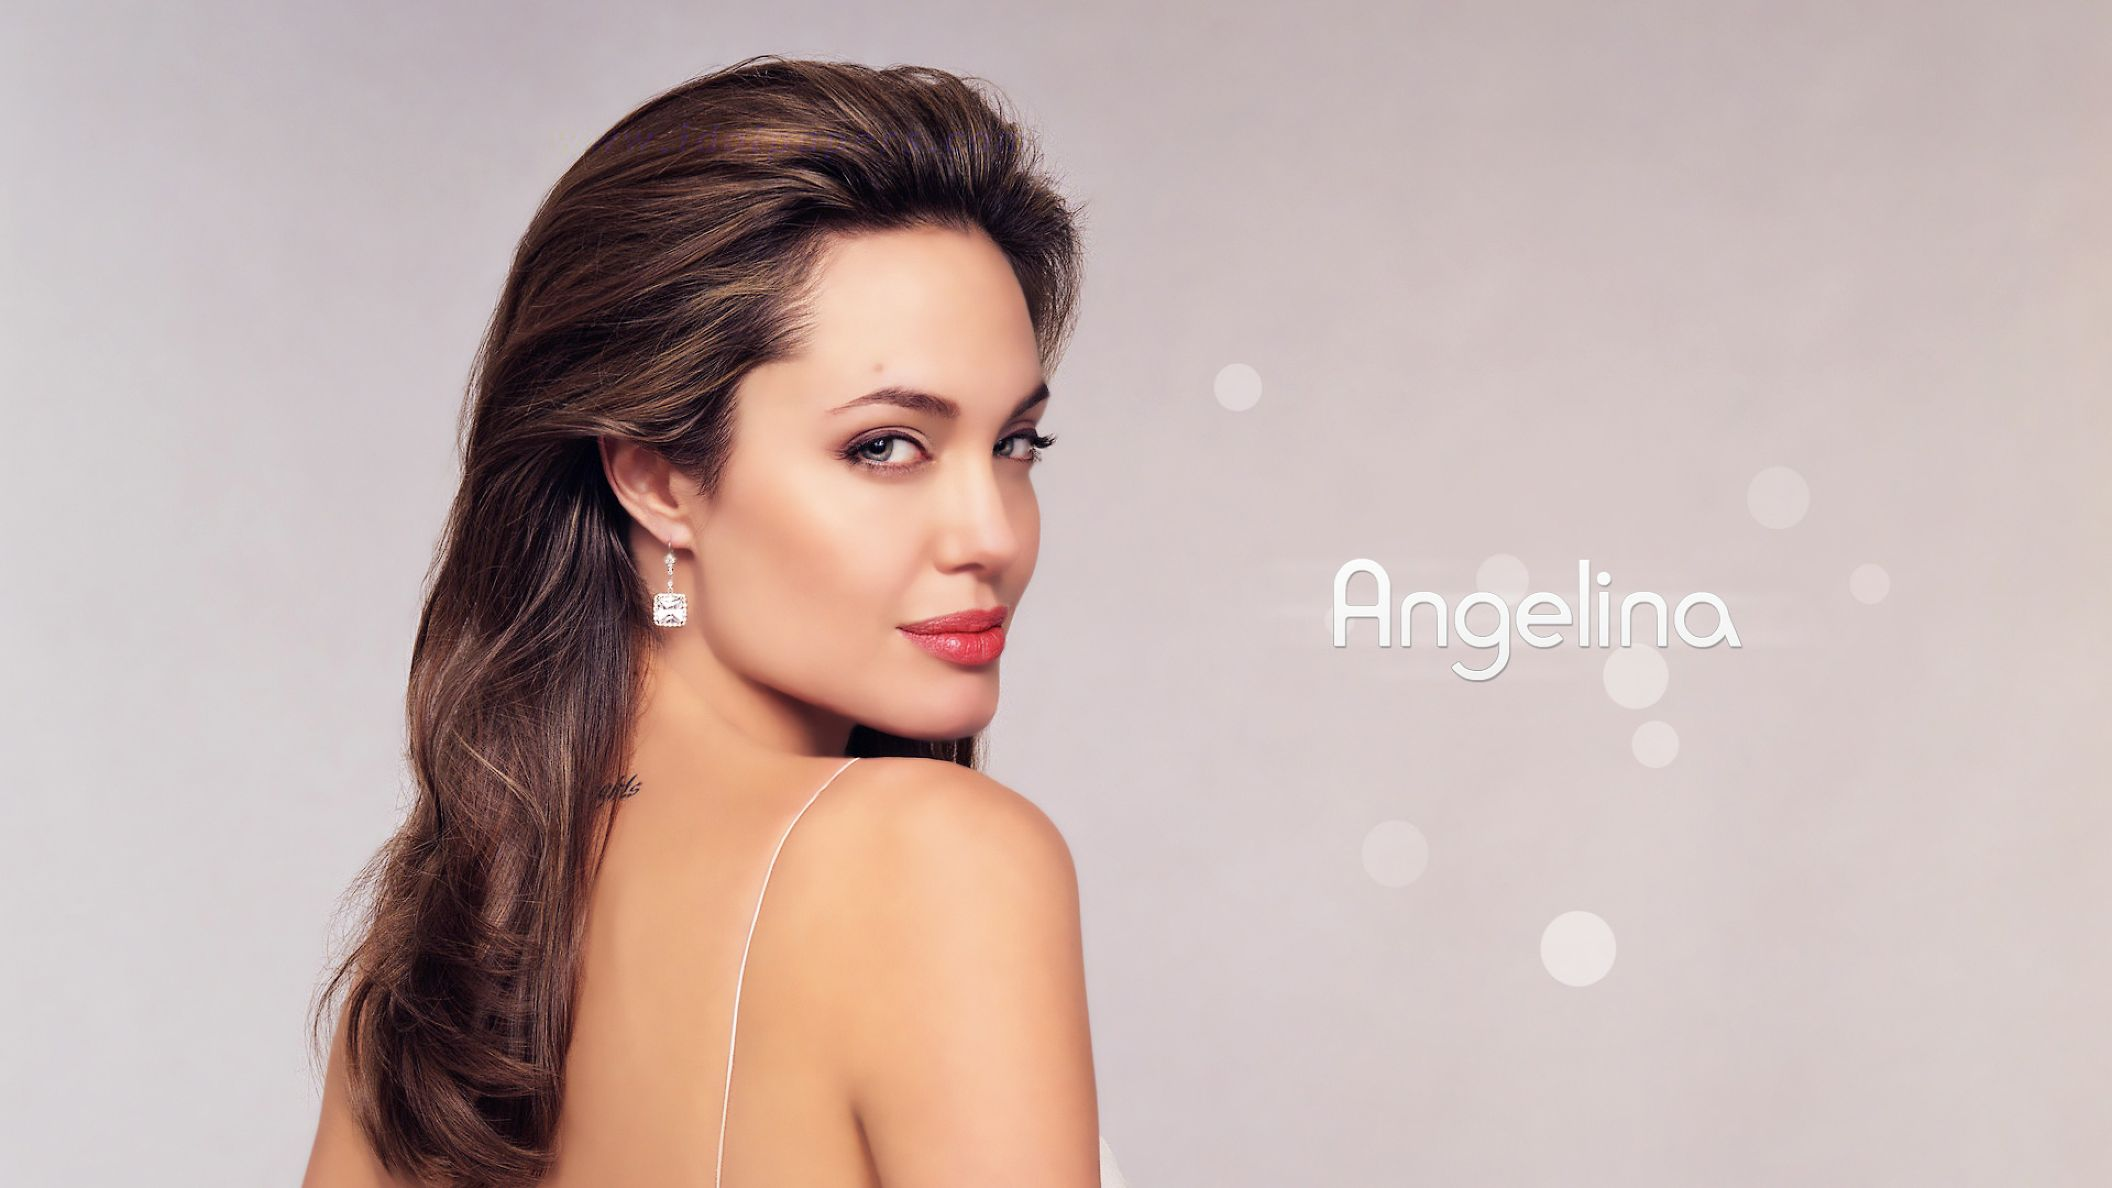 Download free HD Angelina Jolie HD Sweet Pinky 1920×1080 Wallpaper, image